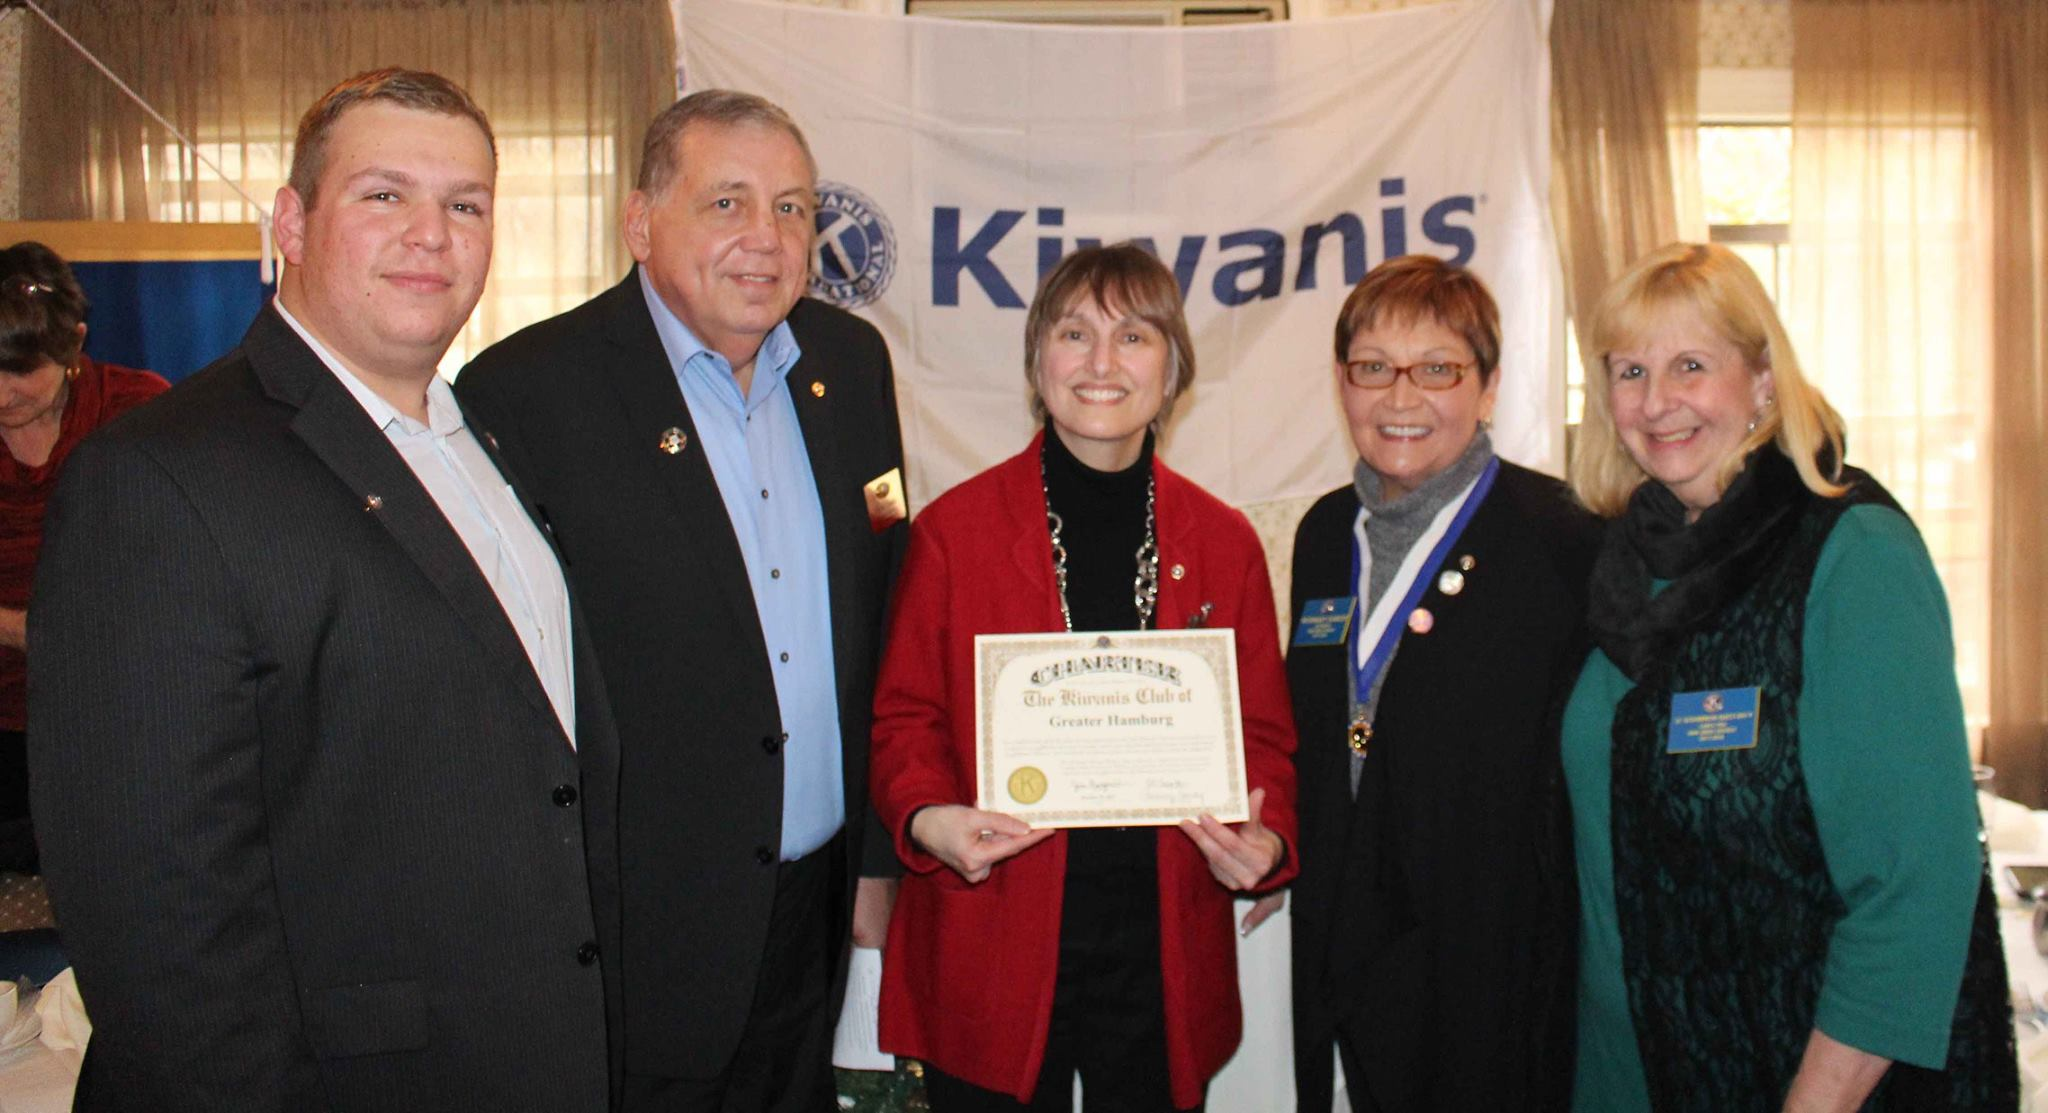 Kiwanis Club of Greater Parsippany welcomes new chartered Club – Kiwanis Club of Greater Hamburg